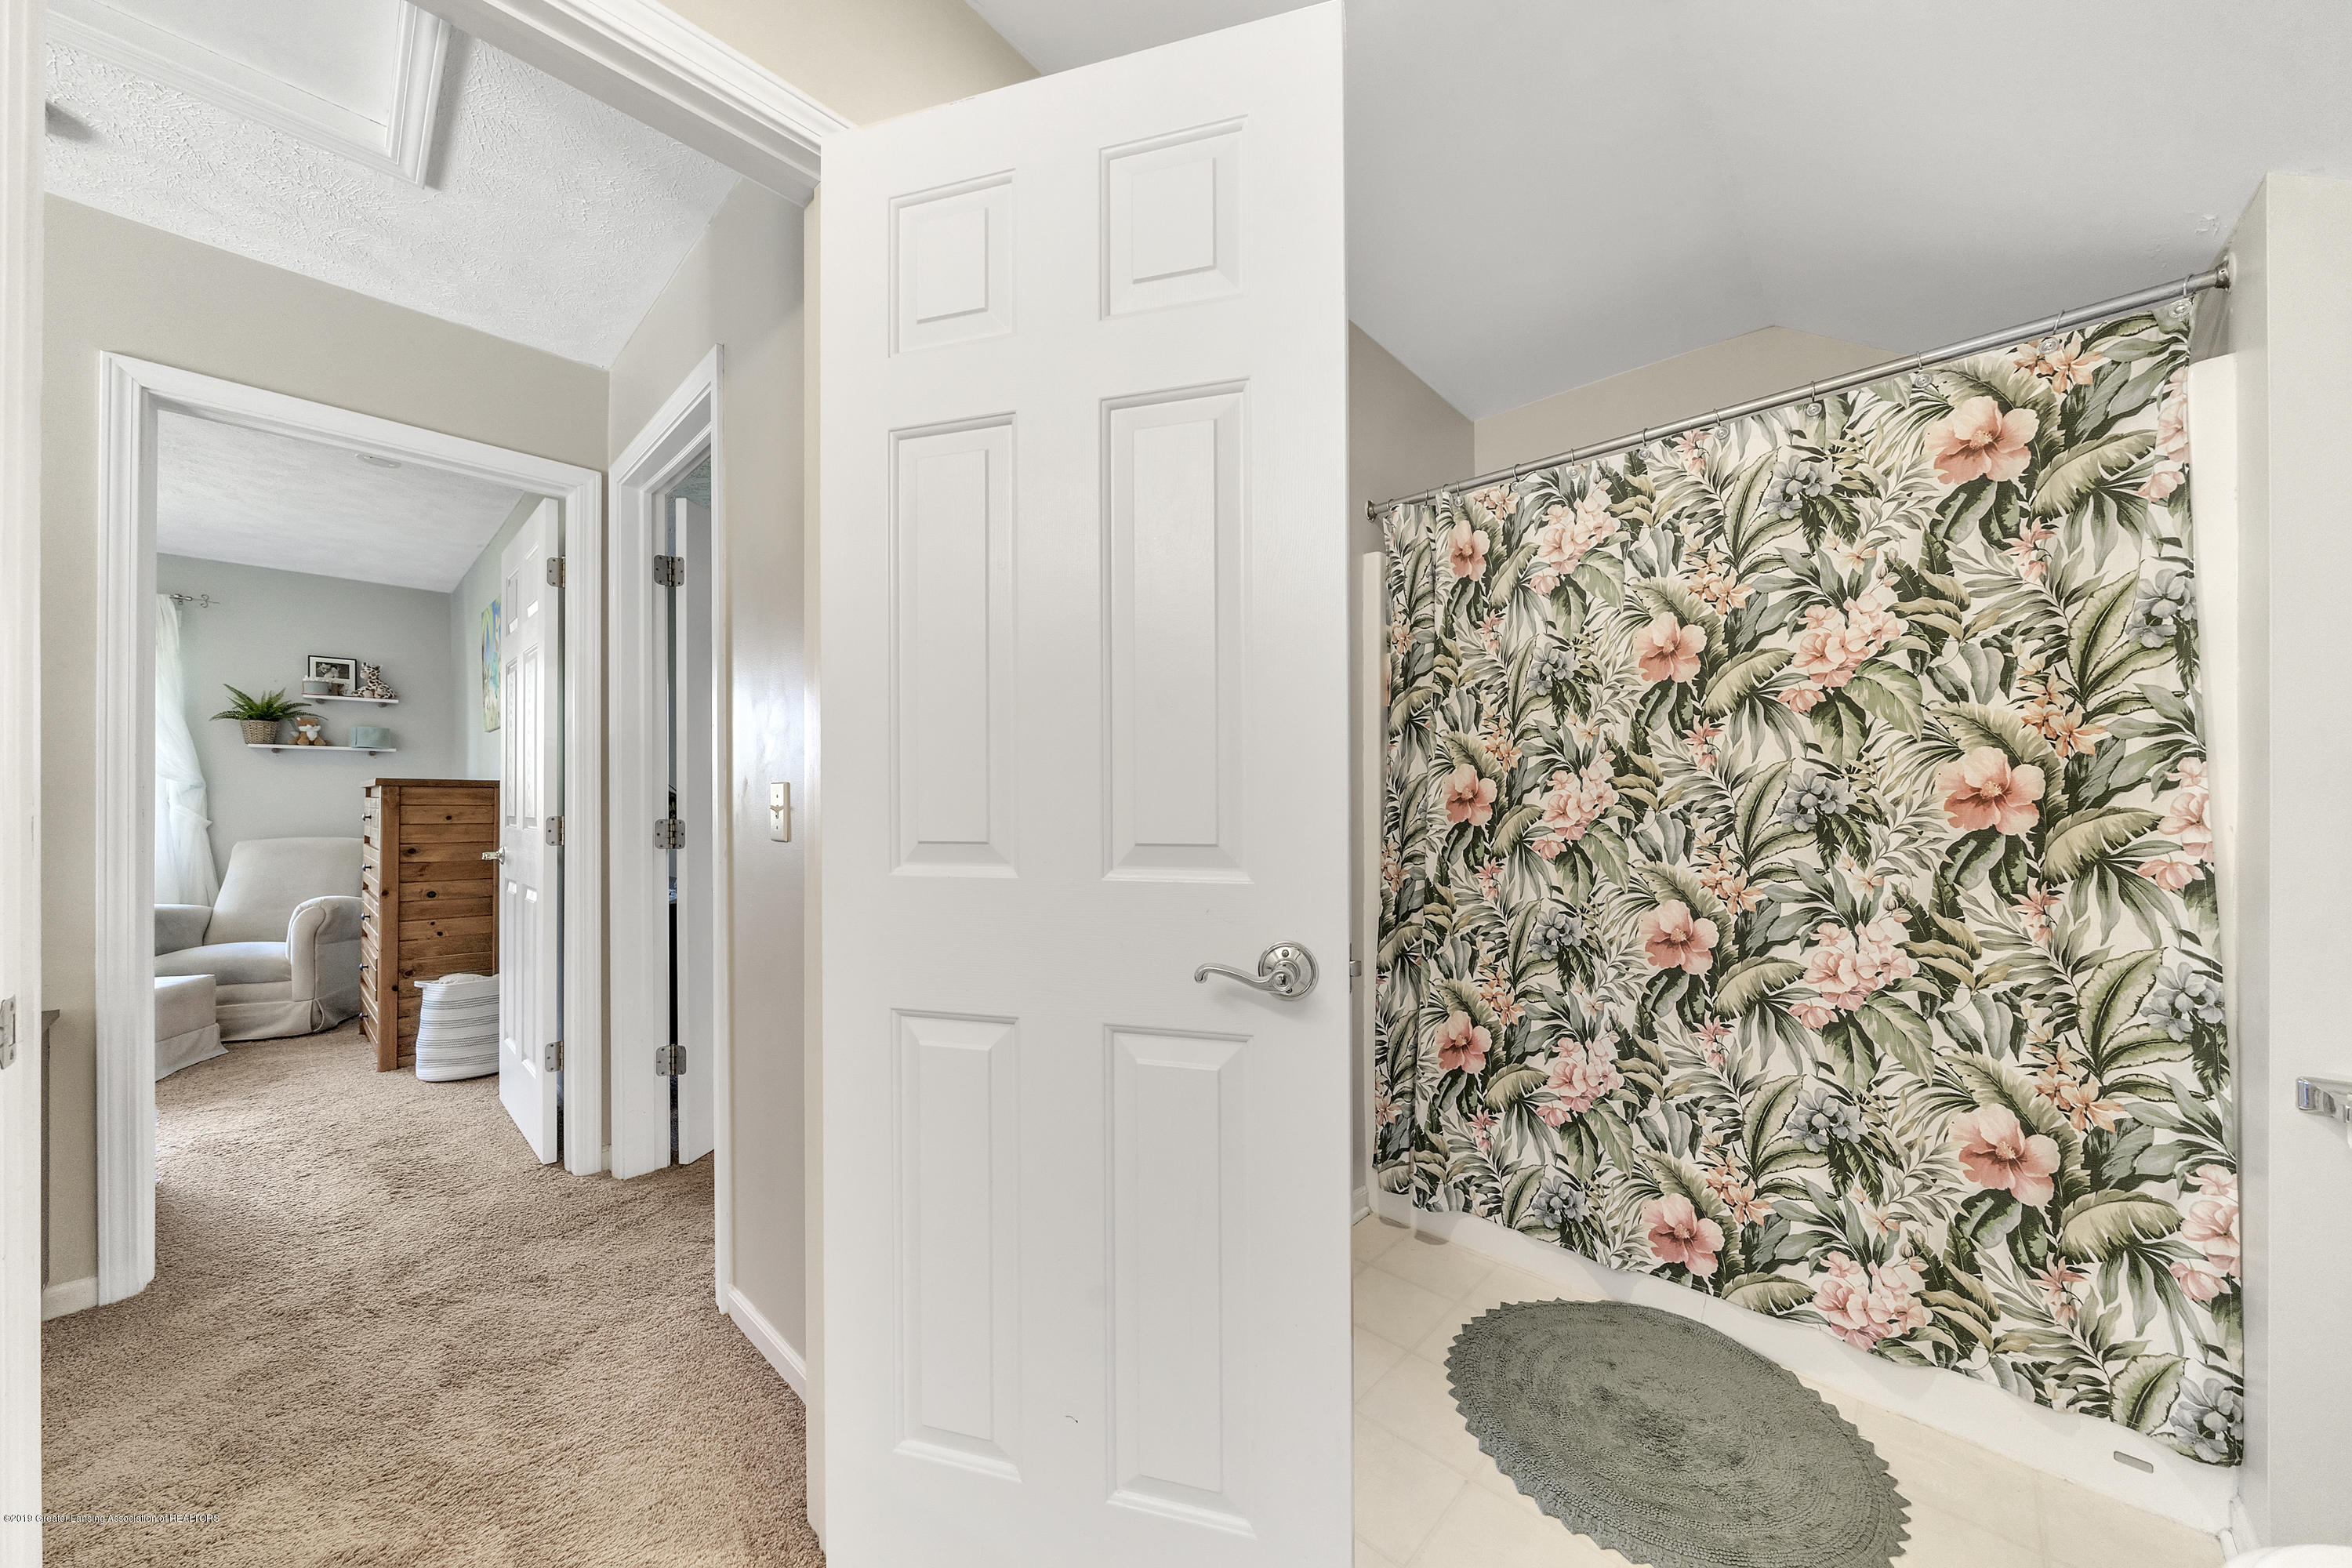 1258 Sumac Ln - 1258-Sumac-WindowStill-Real-Estate-Photo - 21